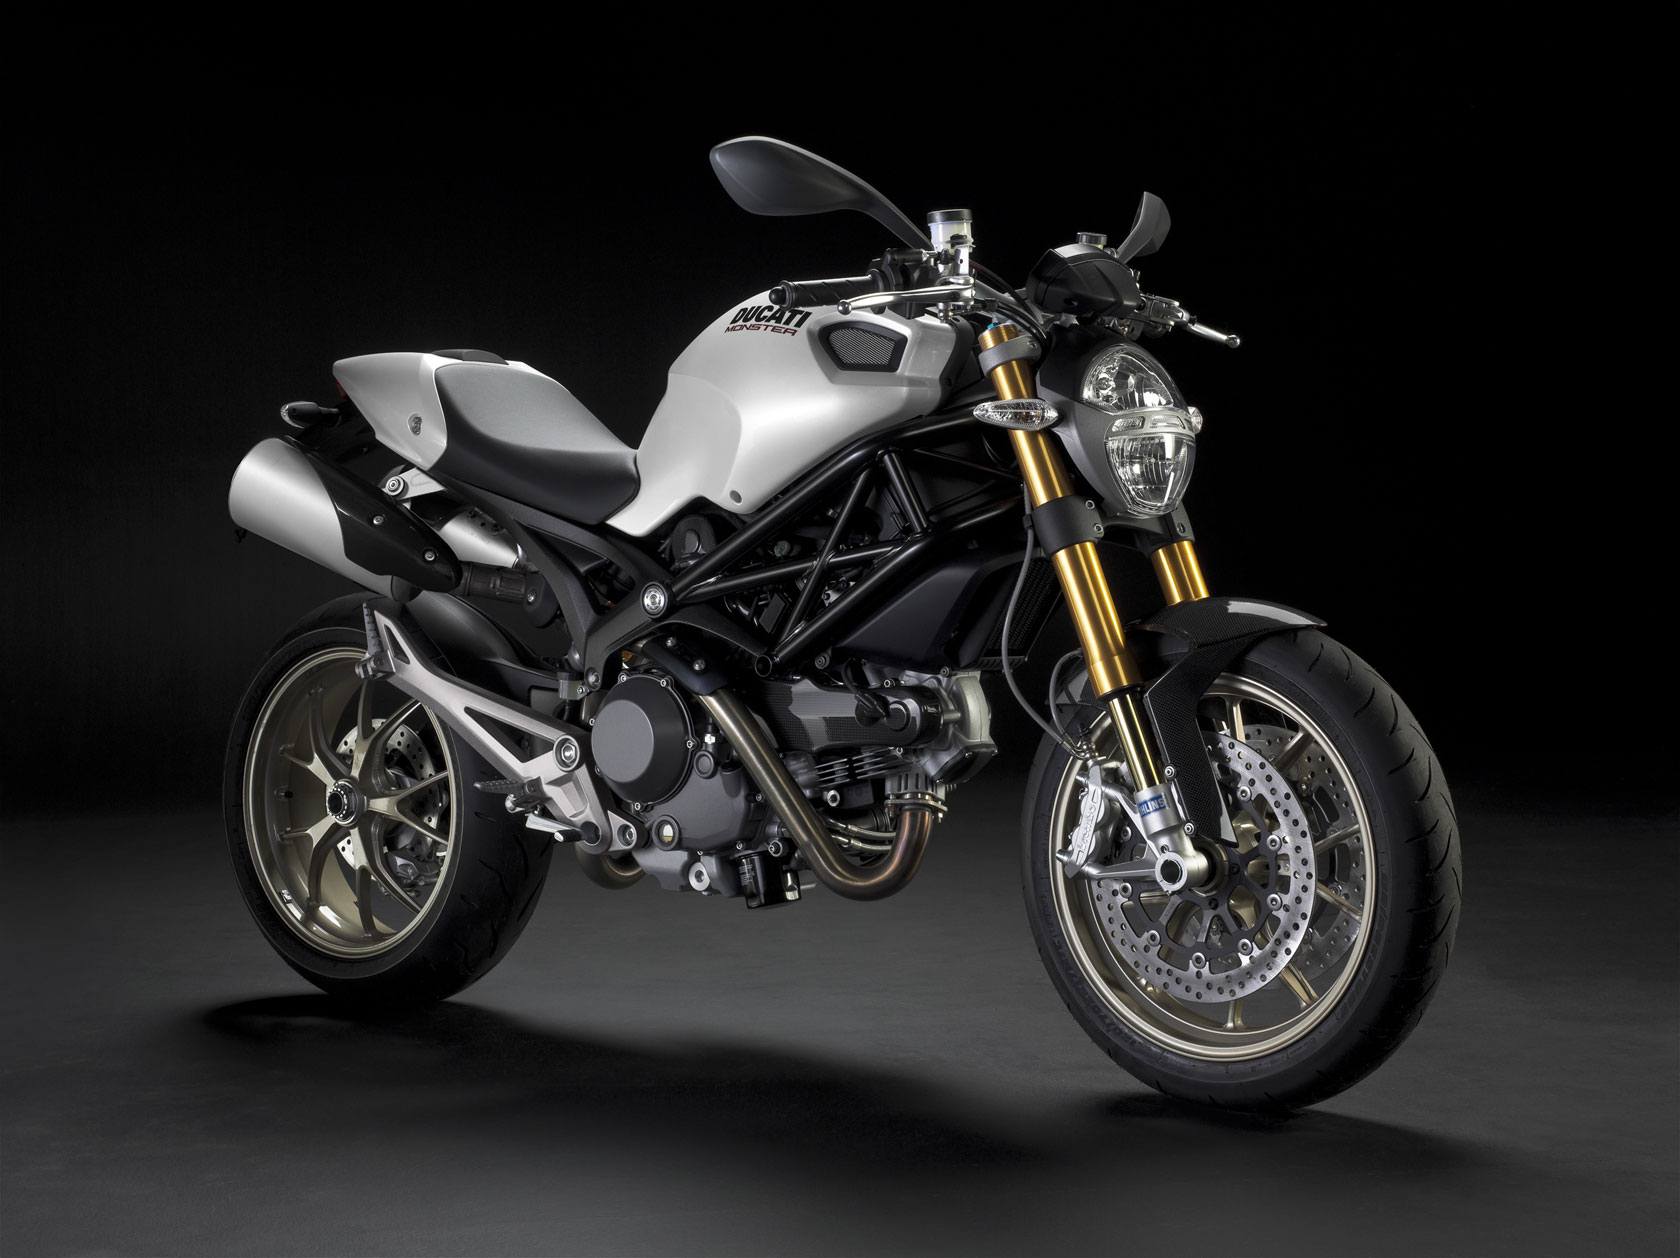 Ducati Monster 1100 S 2010 images #79341